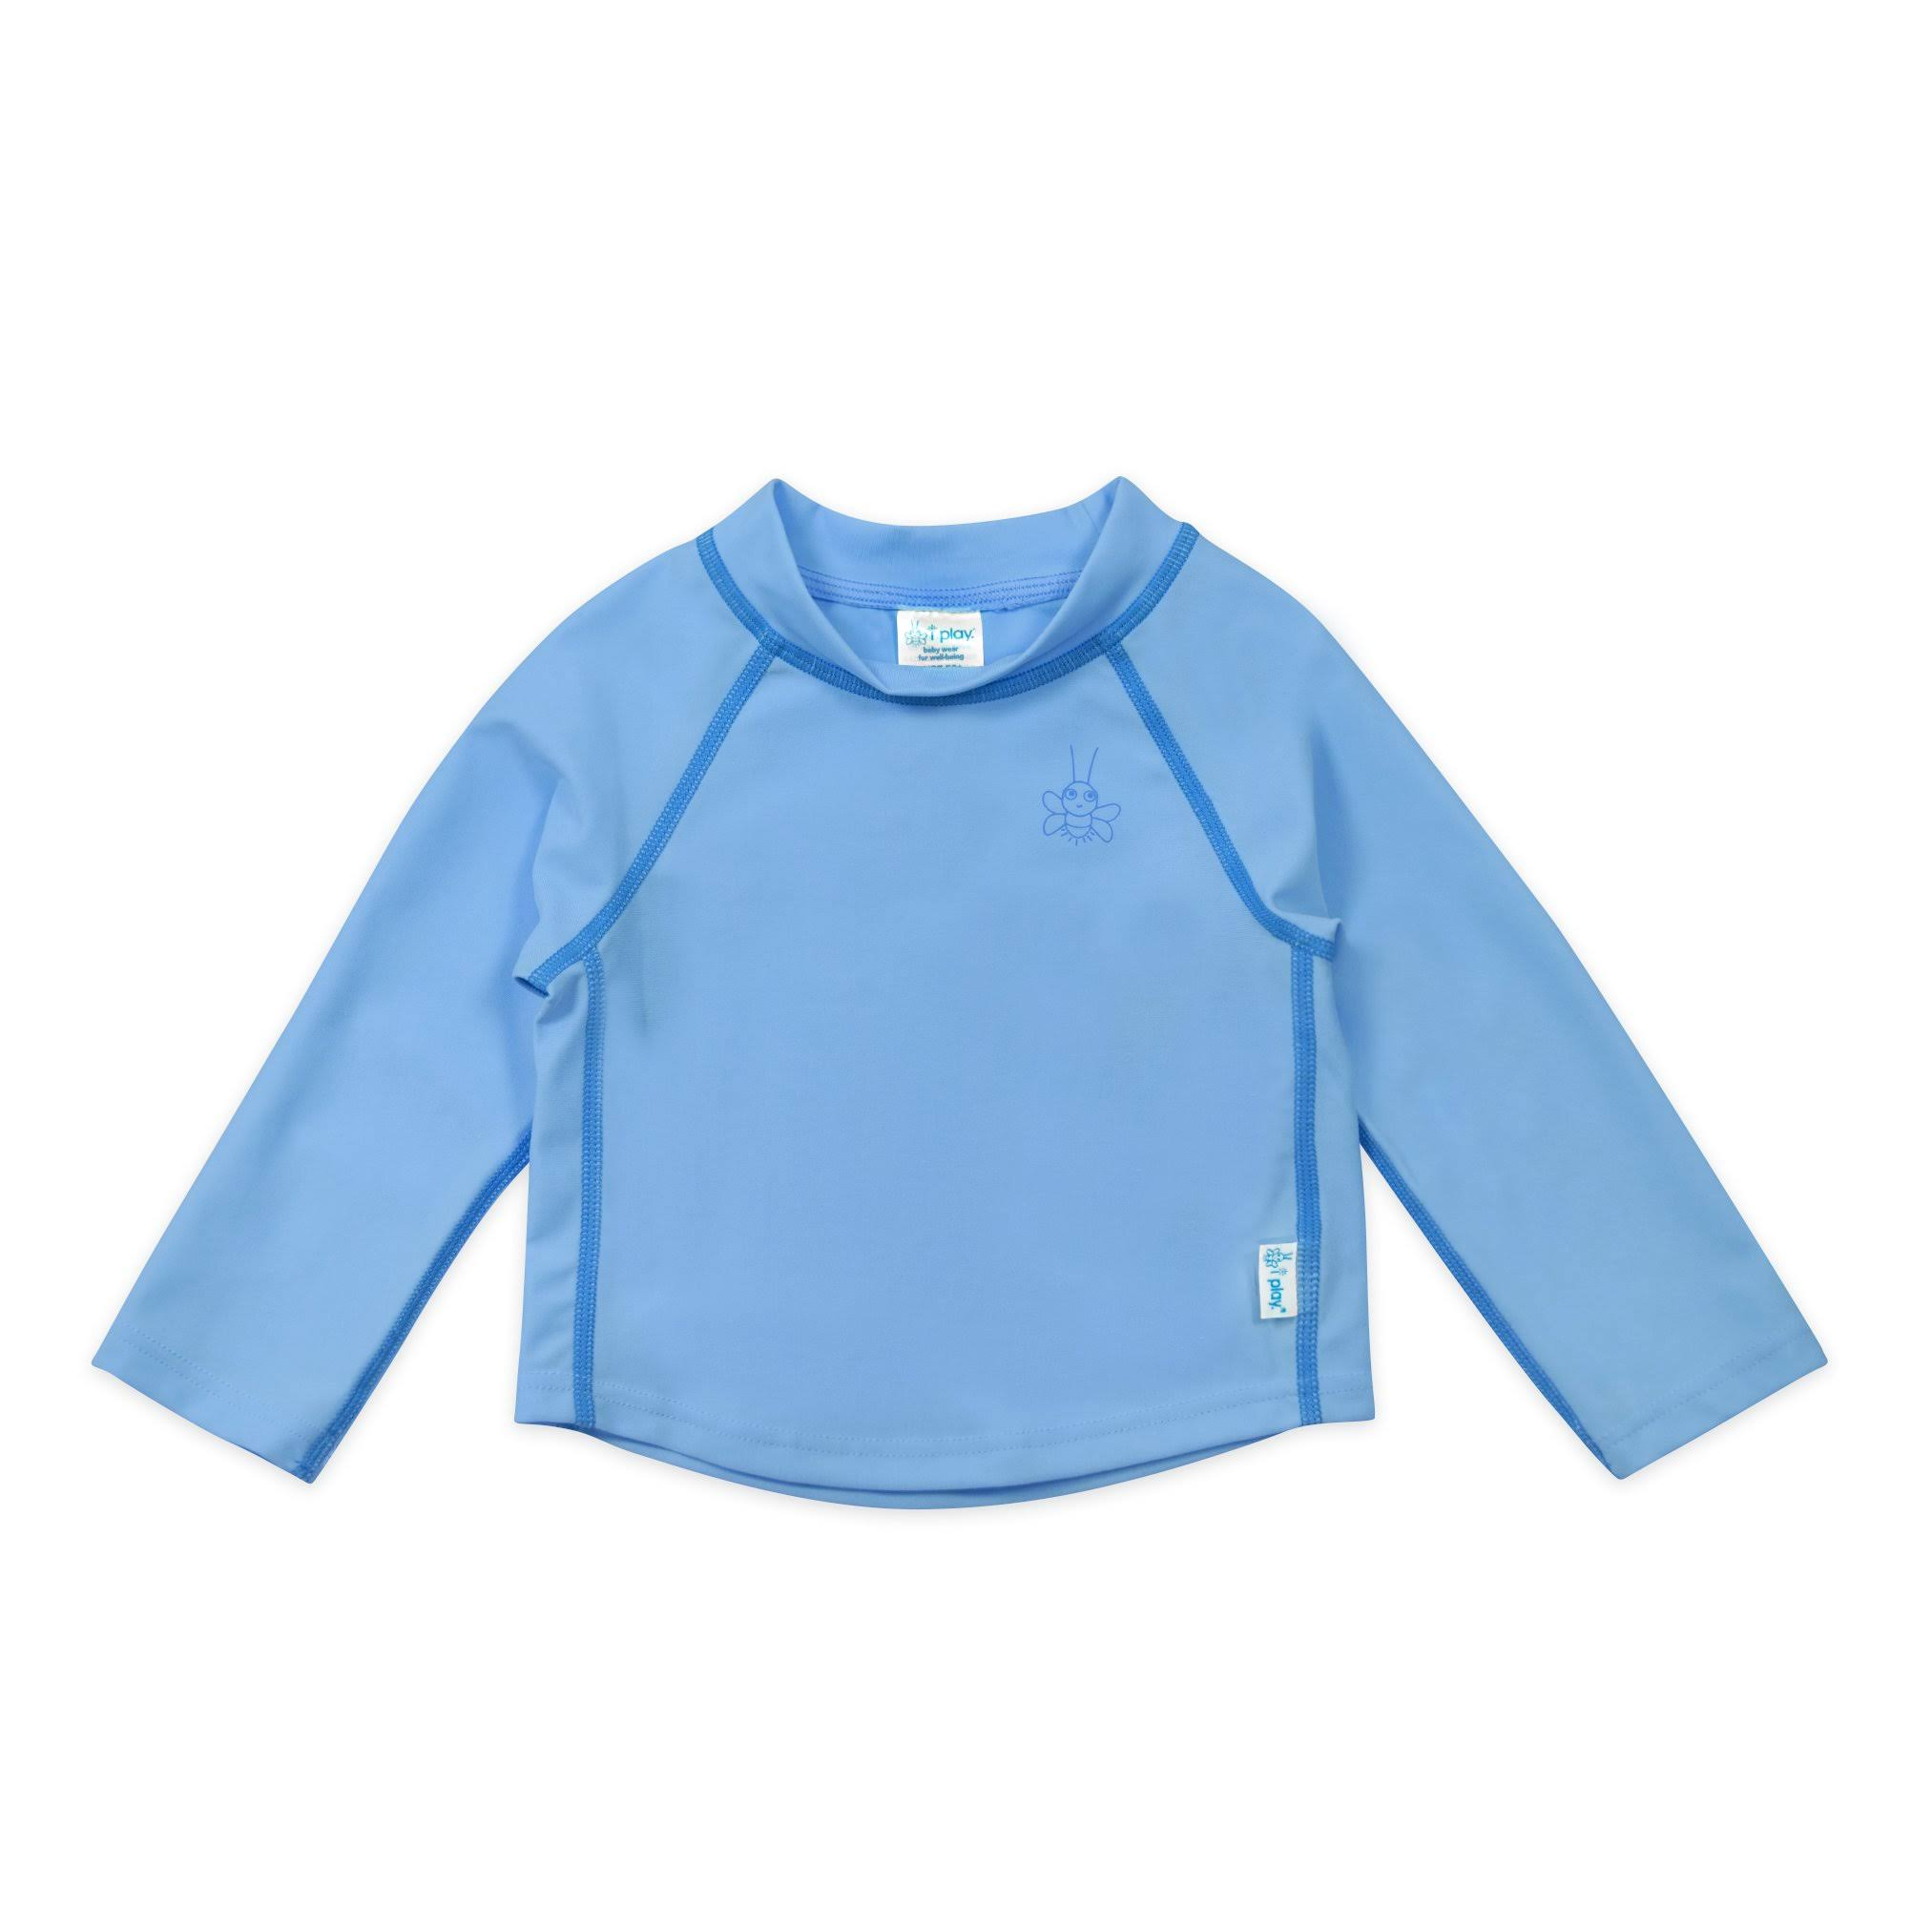 I Play - Long Sleeve Rashguard - 4T - Light Blue